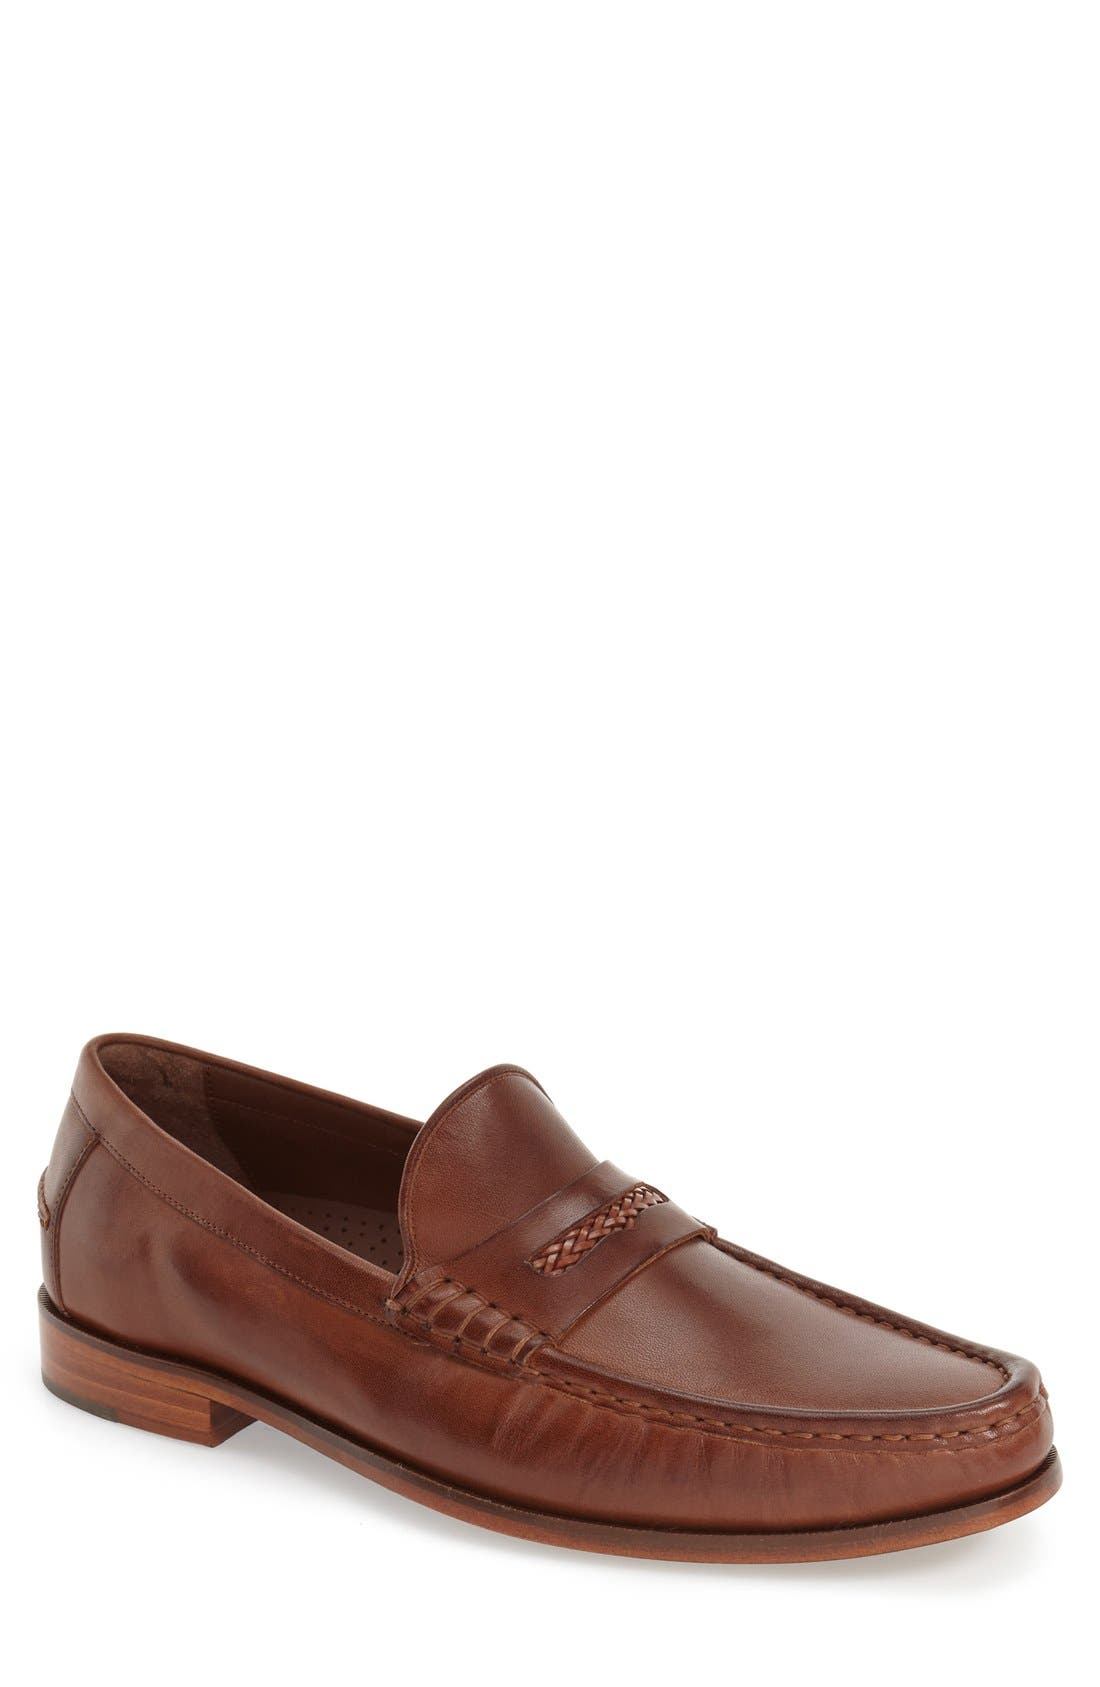 'Pinch Gotham' Penny Loafer,                             Main thumbnail 3, color,